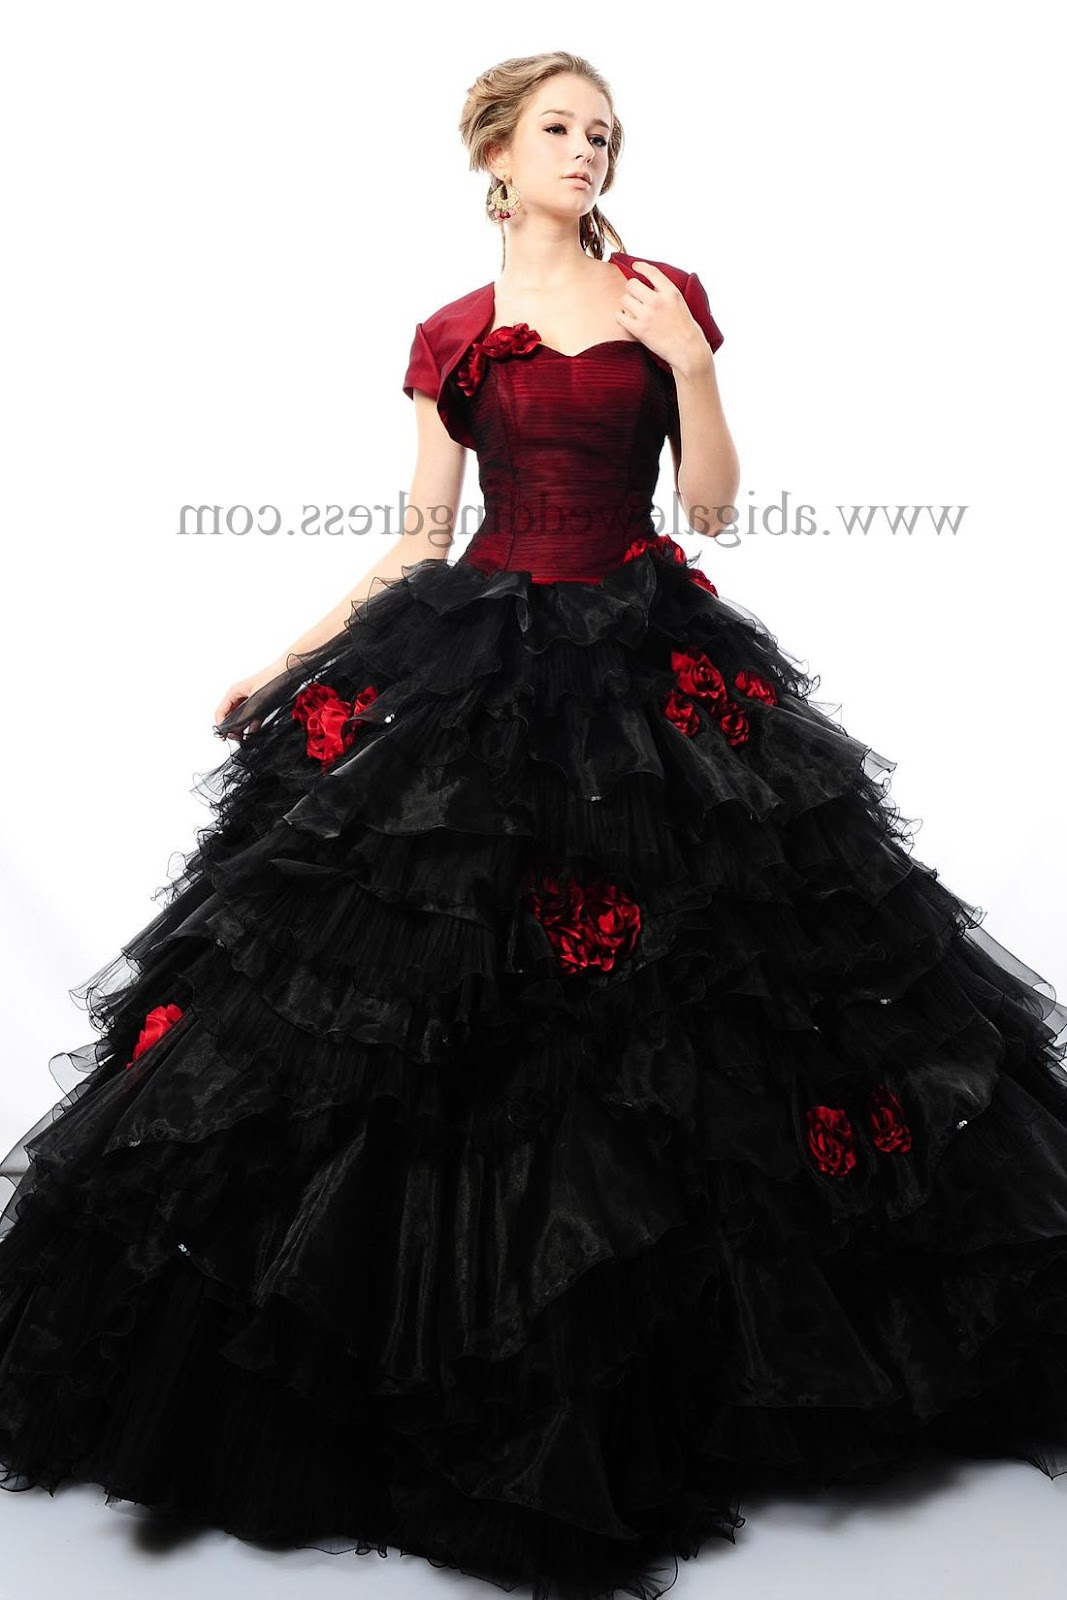 Red Bodice Black Layered Skirt